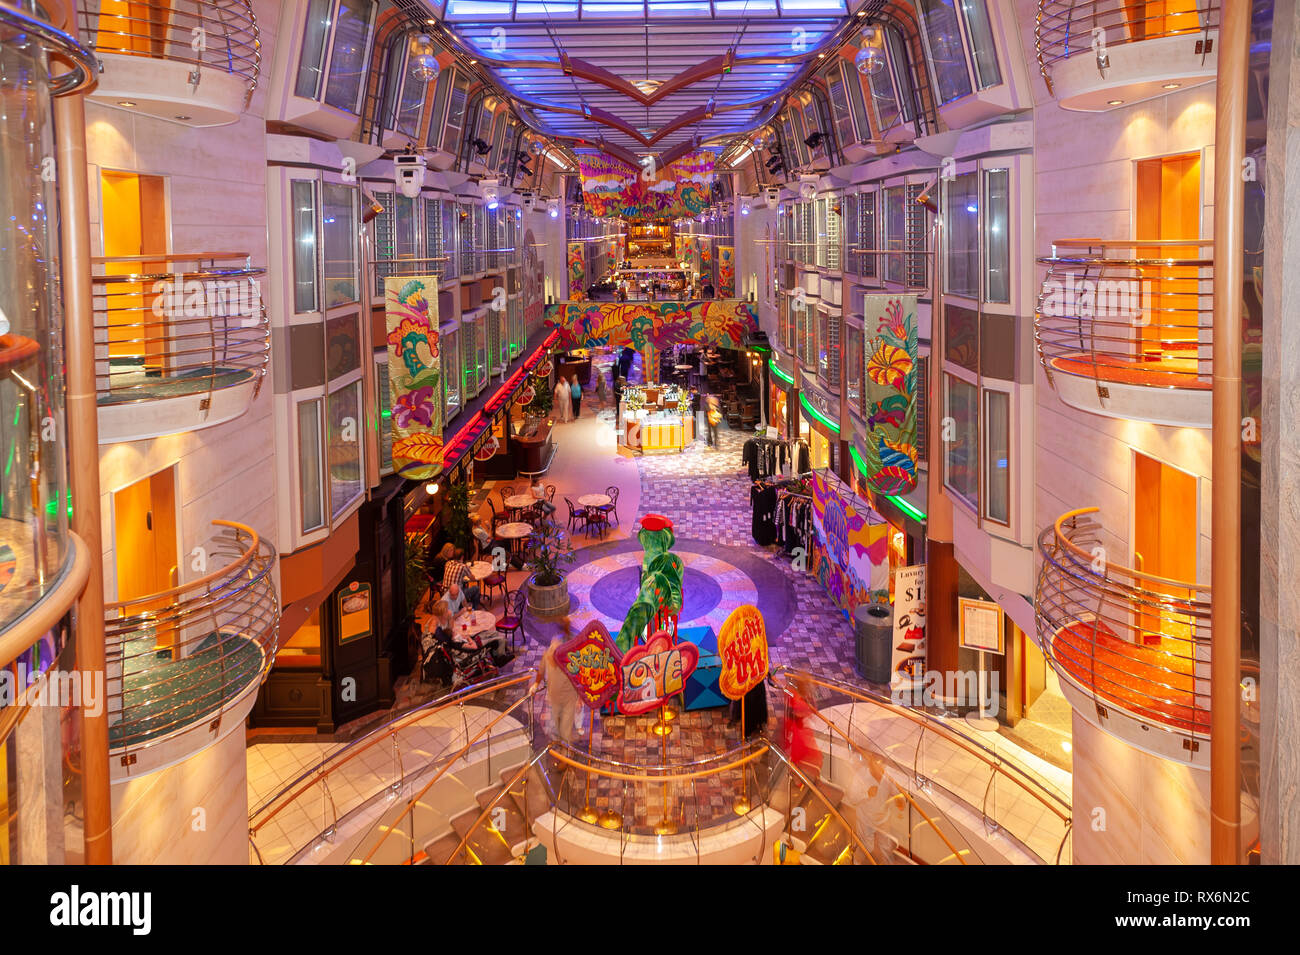 Royal Caribbean Independence of the Seas Cruise Ship interior and exterior photographs showing the ship, parties, people, environment at sea and port. - Stock Image